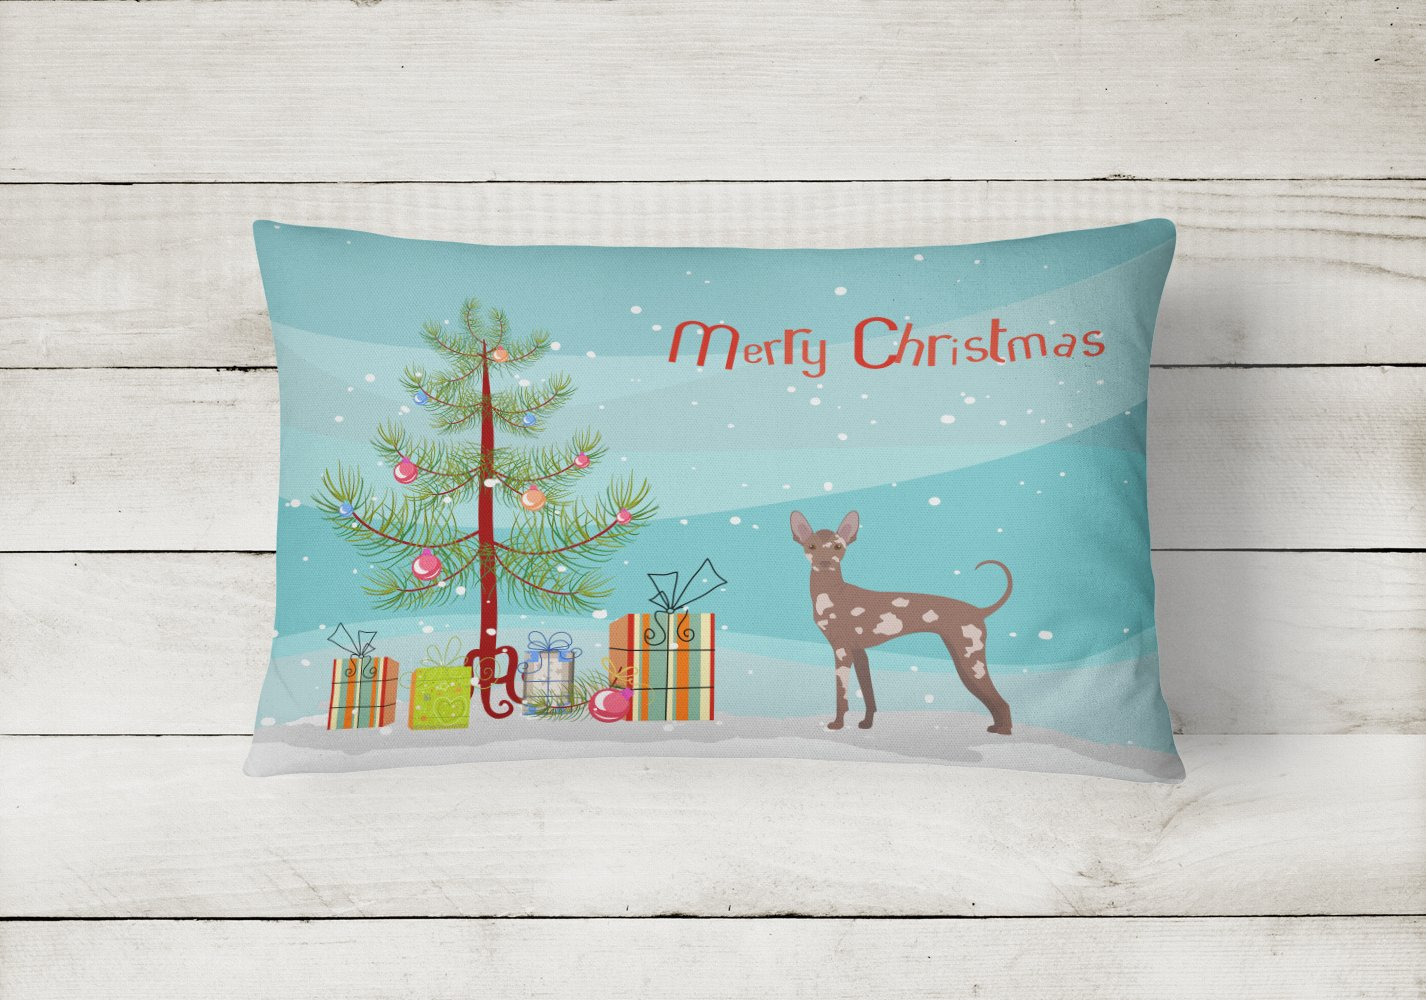 Mexican Hairless Dog Christmas Tree Canvas Fabric Decorative Pillow CK3473PW1216 by Caroline's Treasures